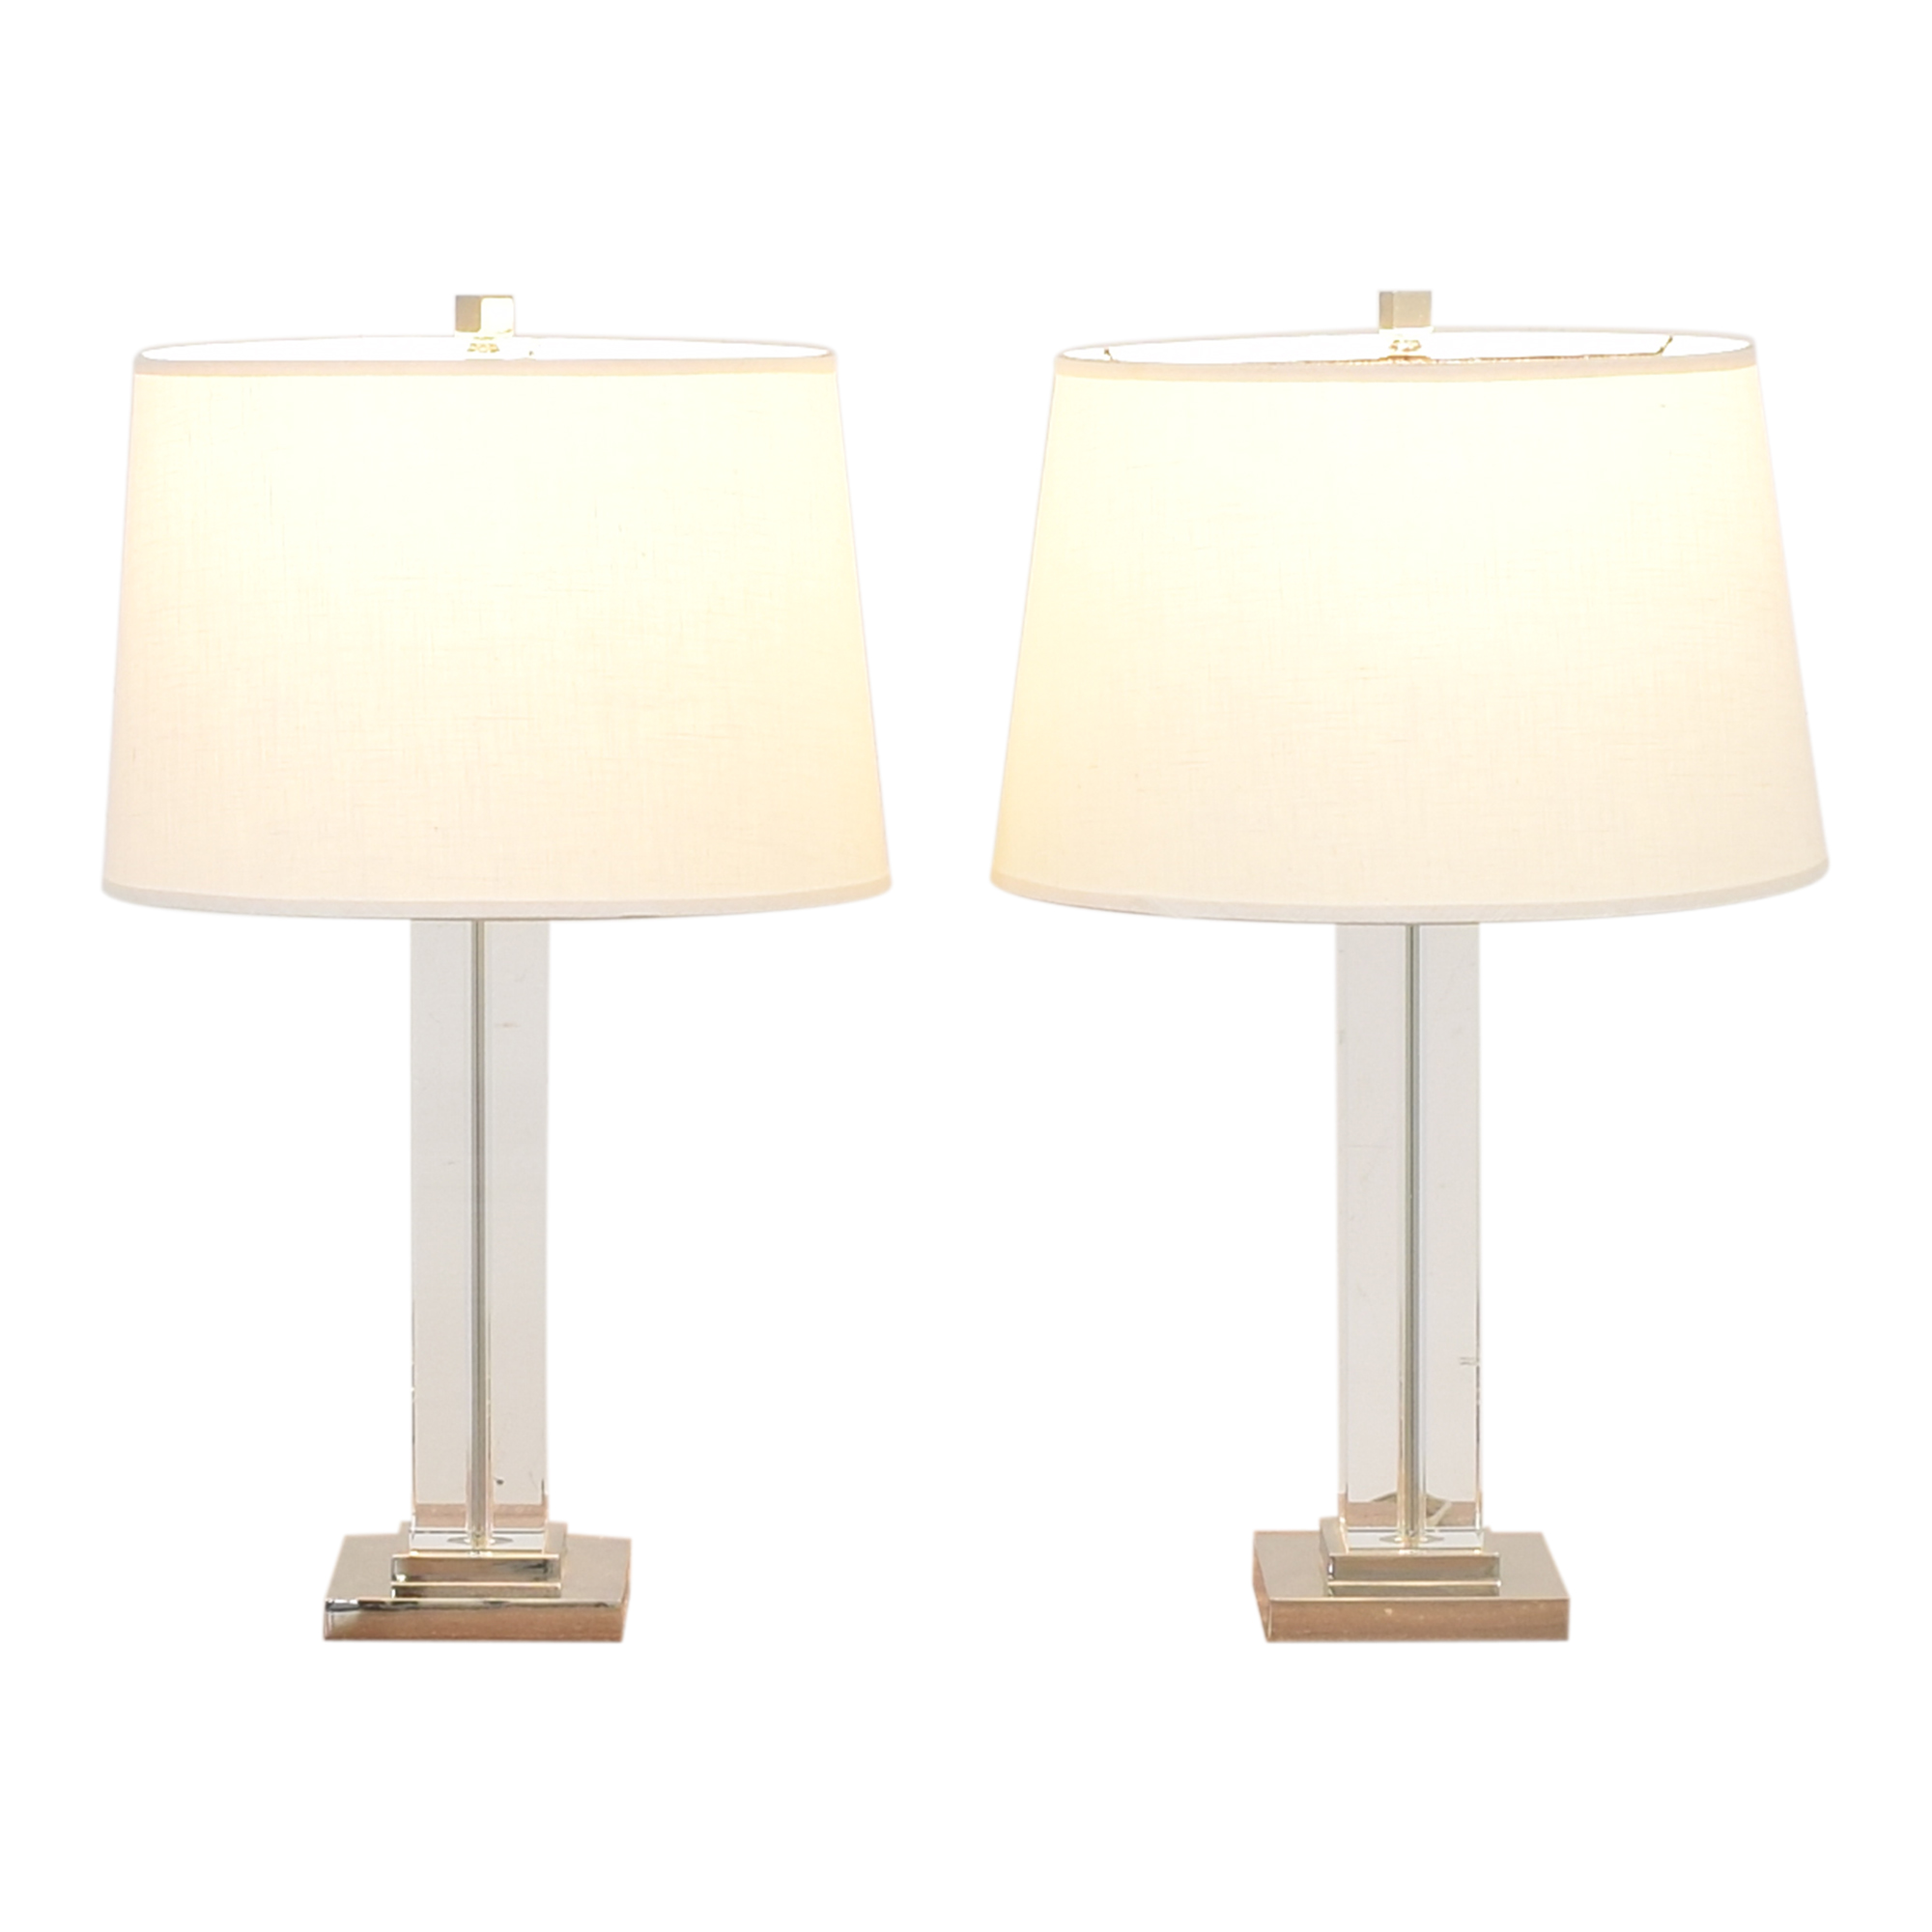 Pottery Barn Pottery Barn Table Lamps clear and white